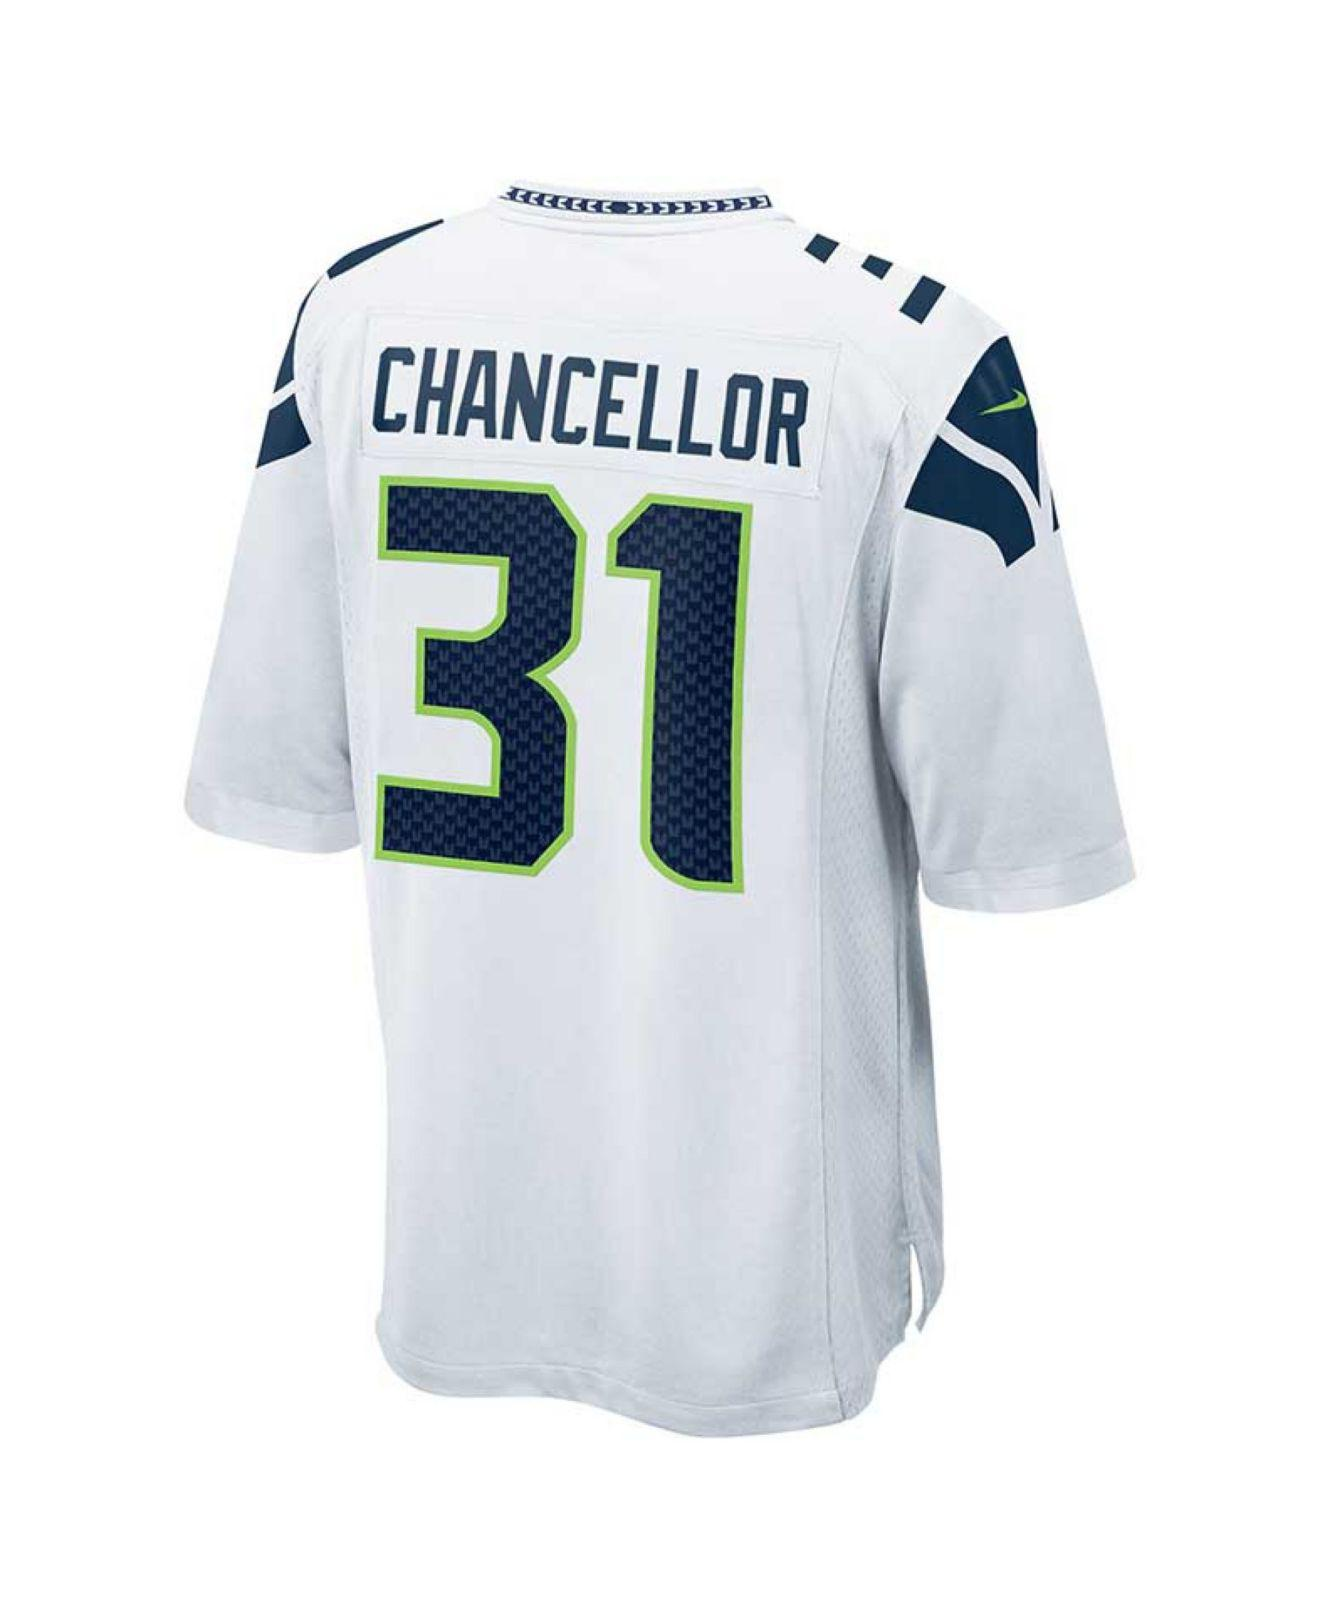 Lyst - Nike Men s Kam Chancellor Seattle Seahawks Game Jersey in ... 4195ed857